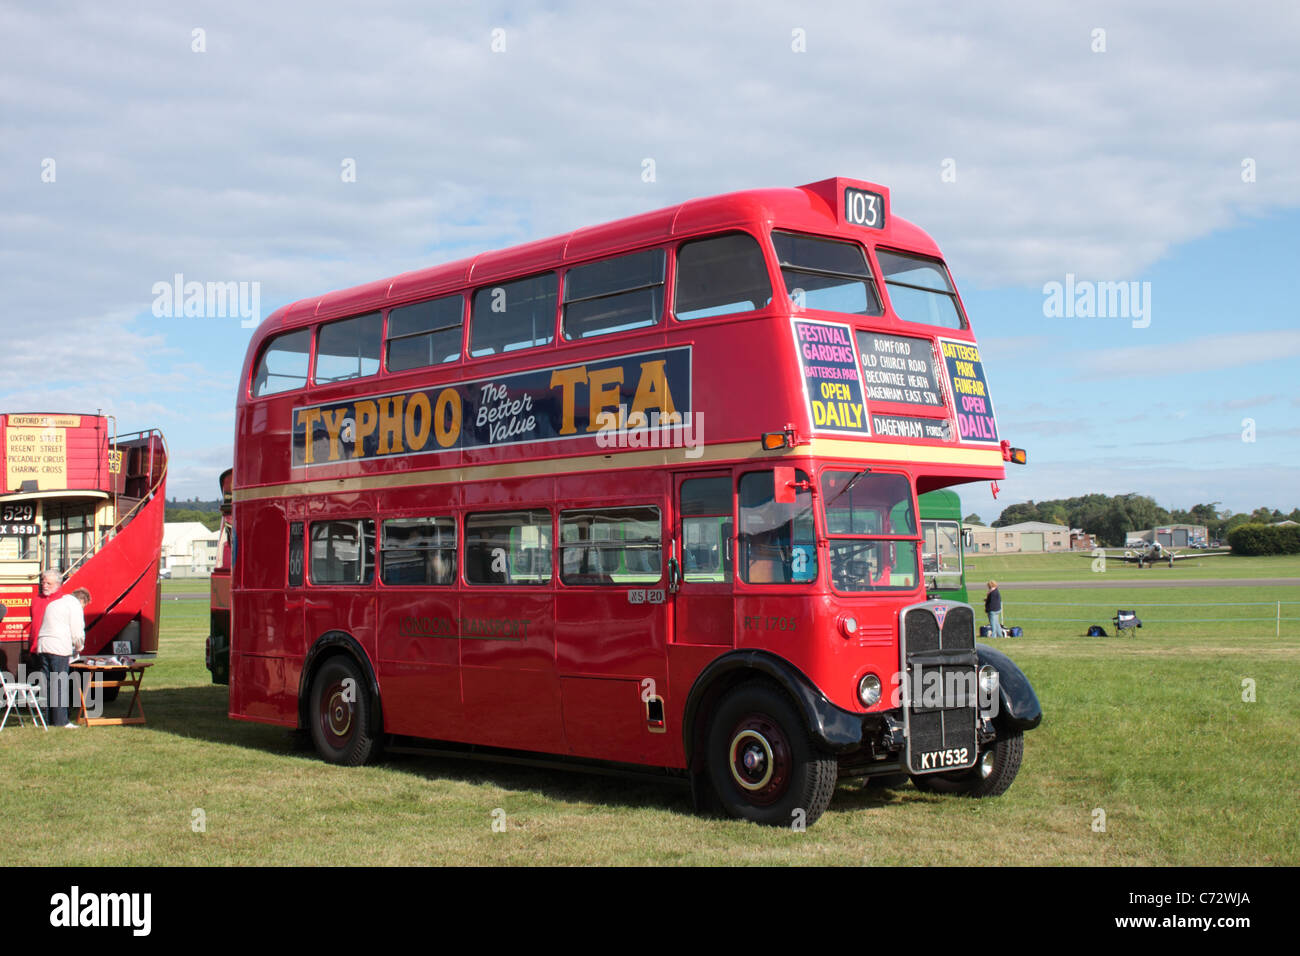 AEC RT KYY 532 Double Deck Bus on display at the Wings and Wheels Show Dunsfold Aerodrome Surrey UK 2011 - Stock Image